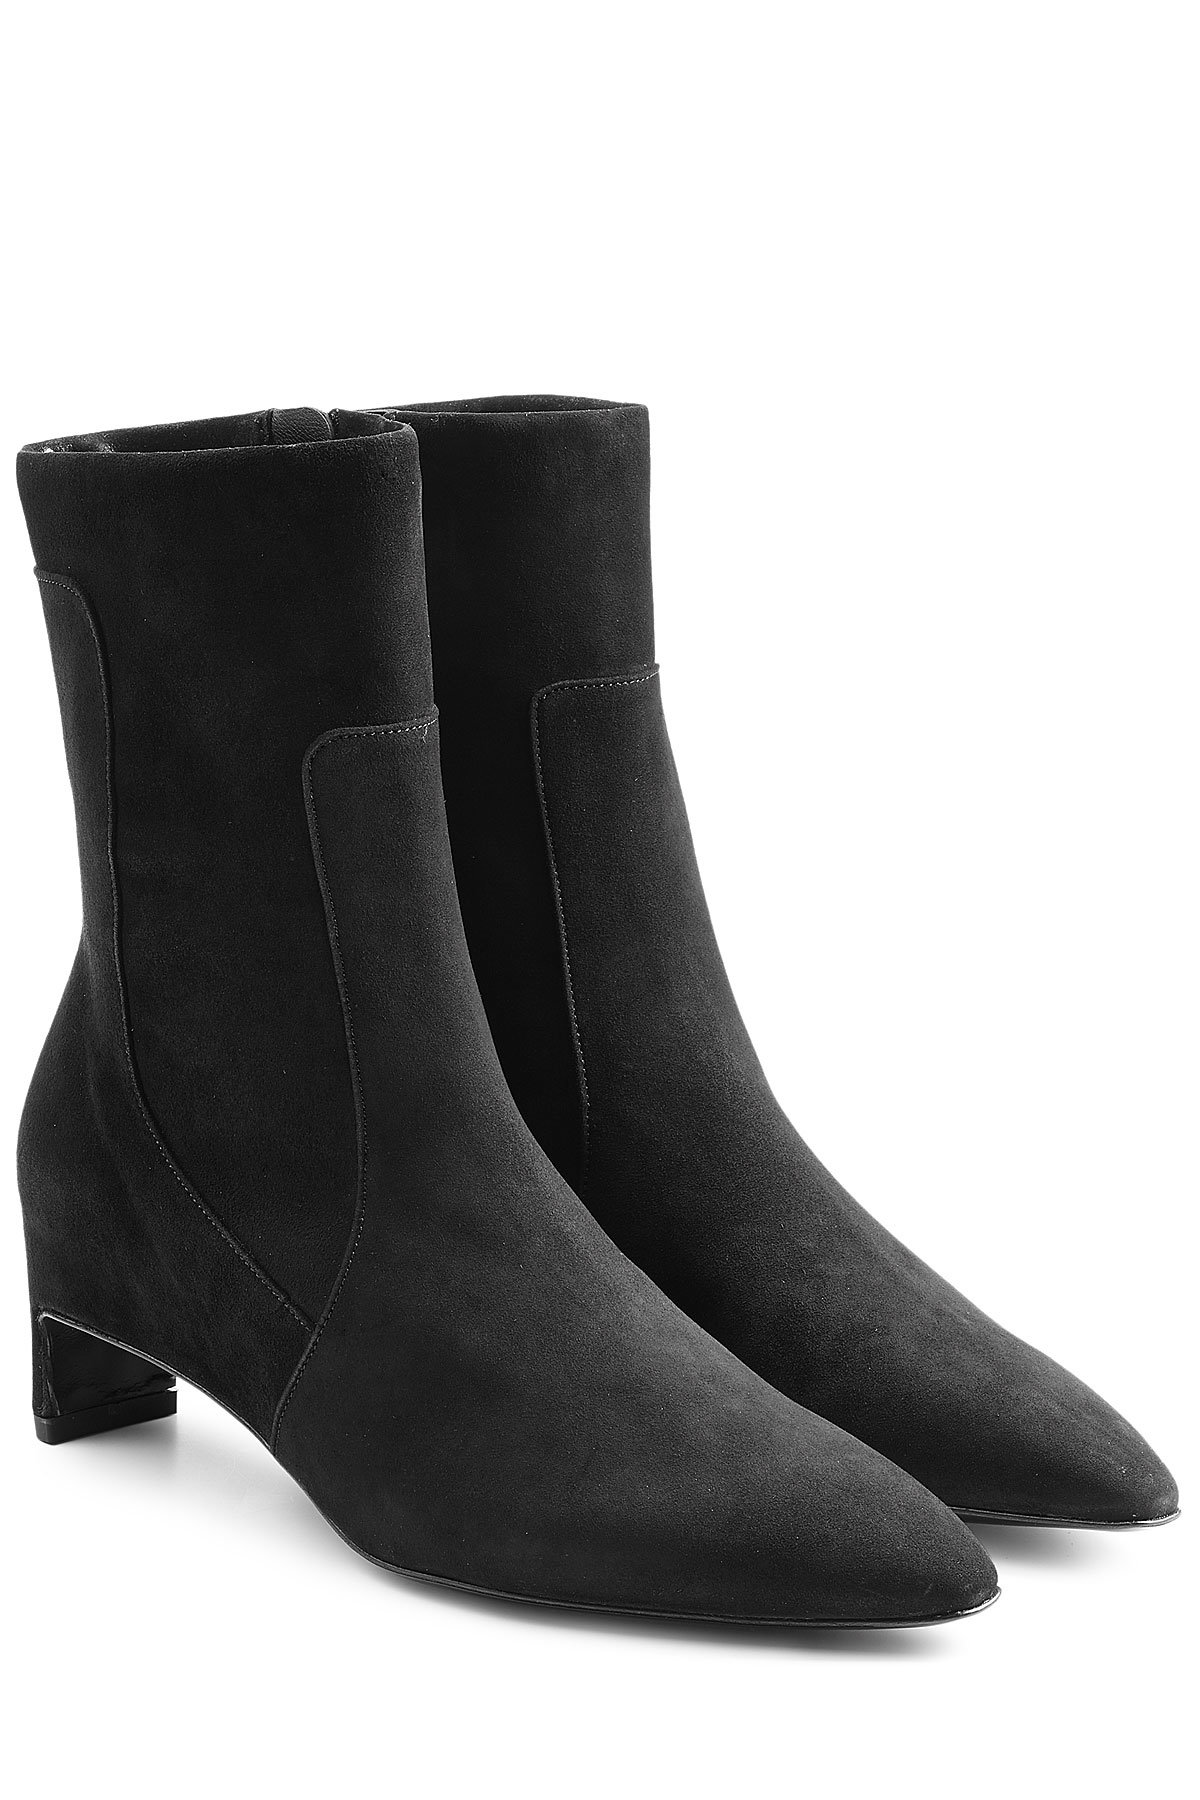 Robert Clergerie Suede Ankle Boots Gr. FR 40